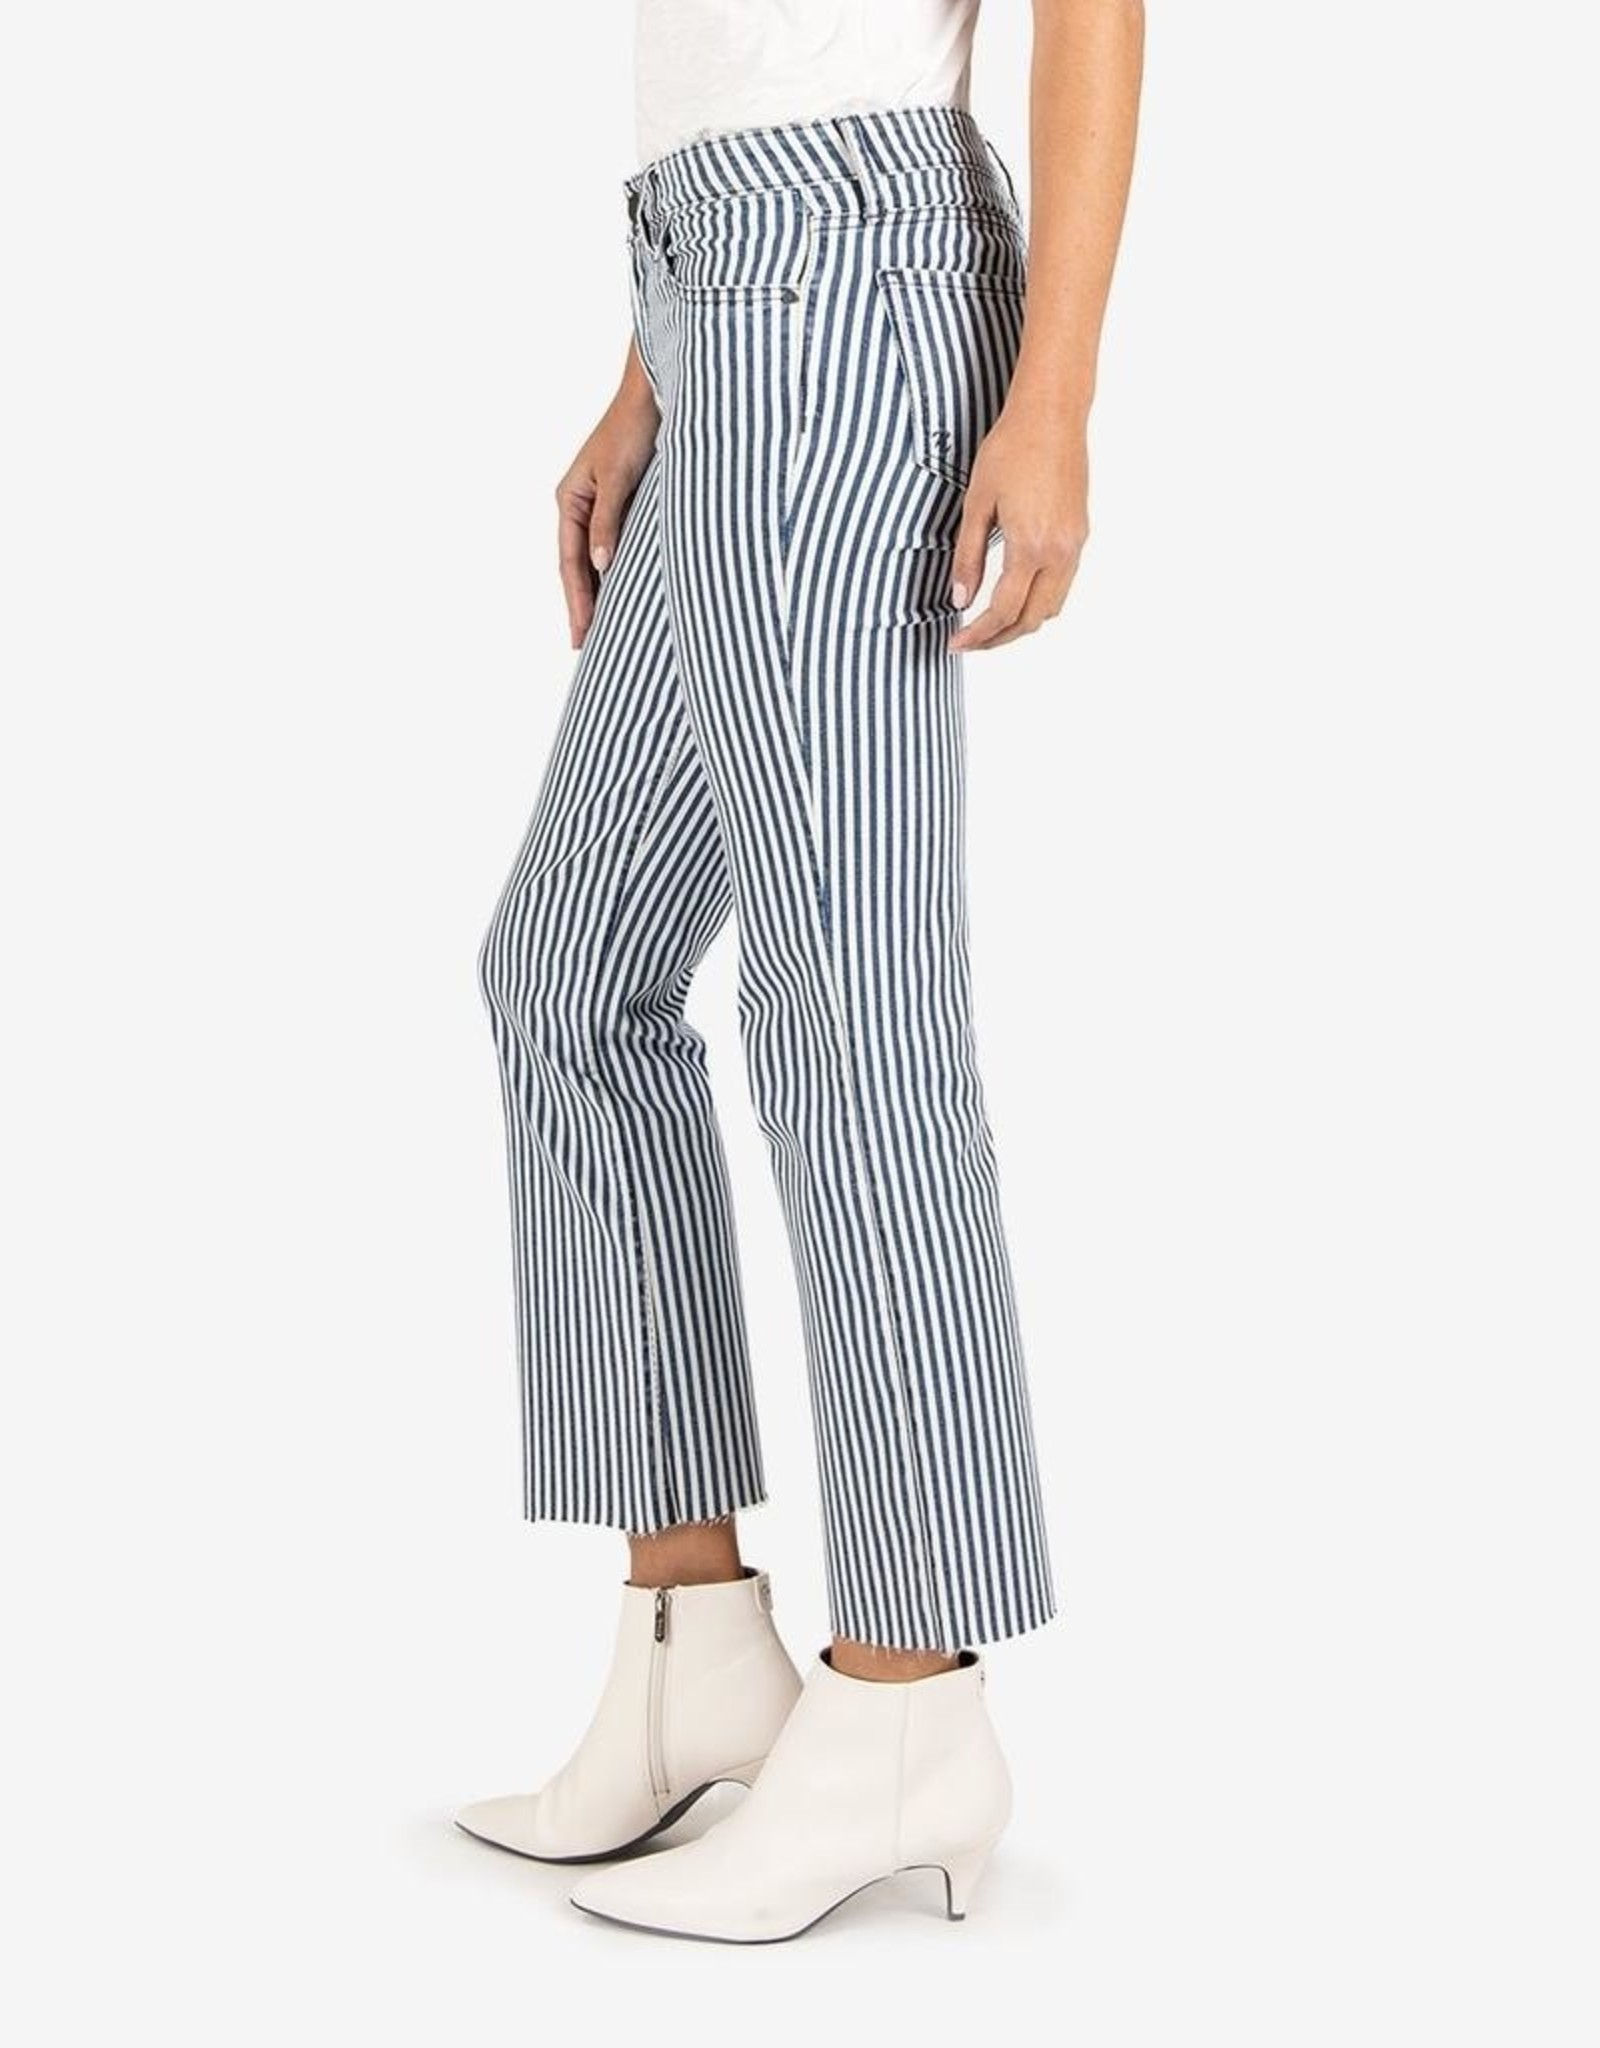 KUT from the kloth Kelsey High Rise Stripe Ankle Flare Jeans